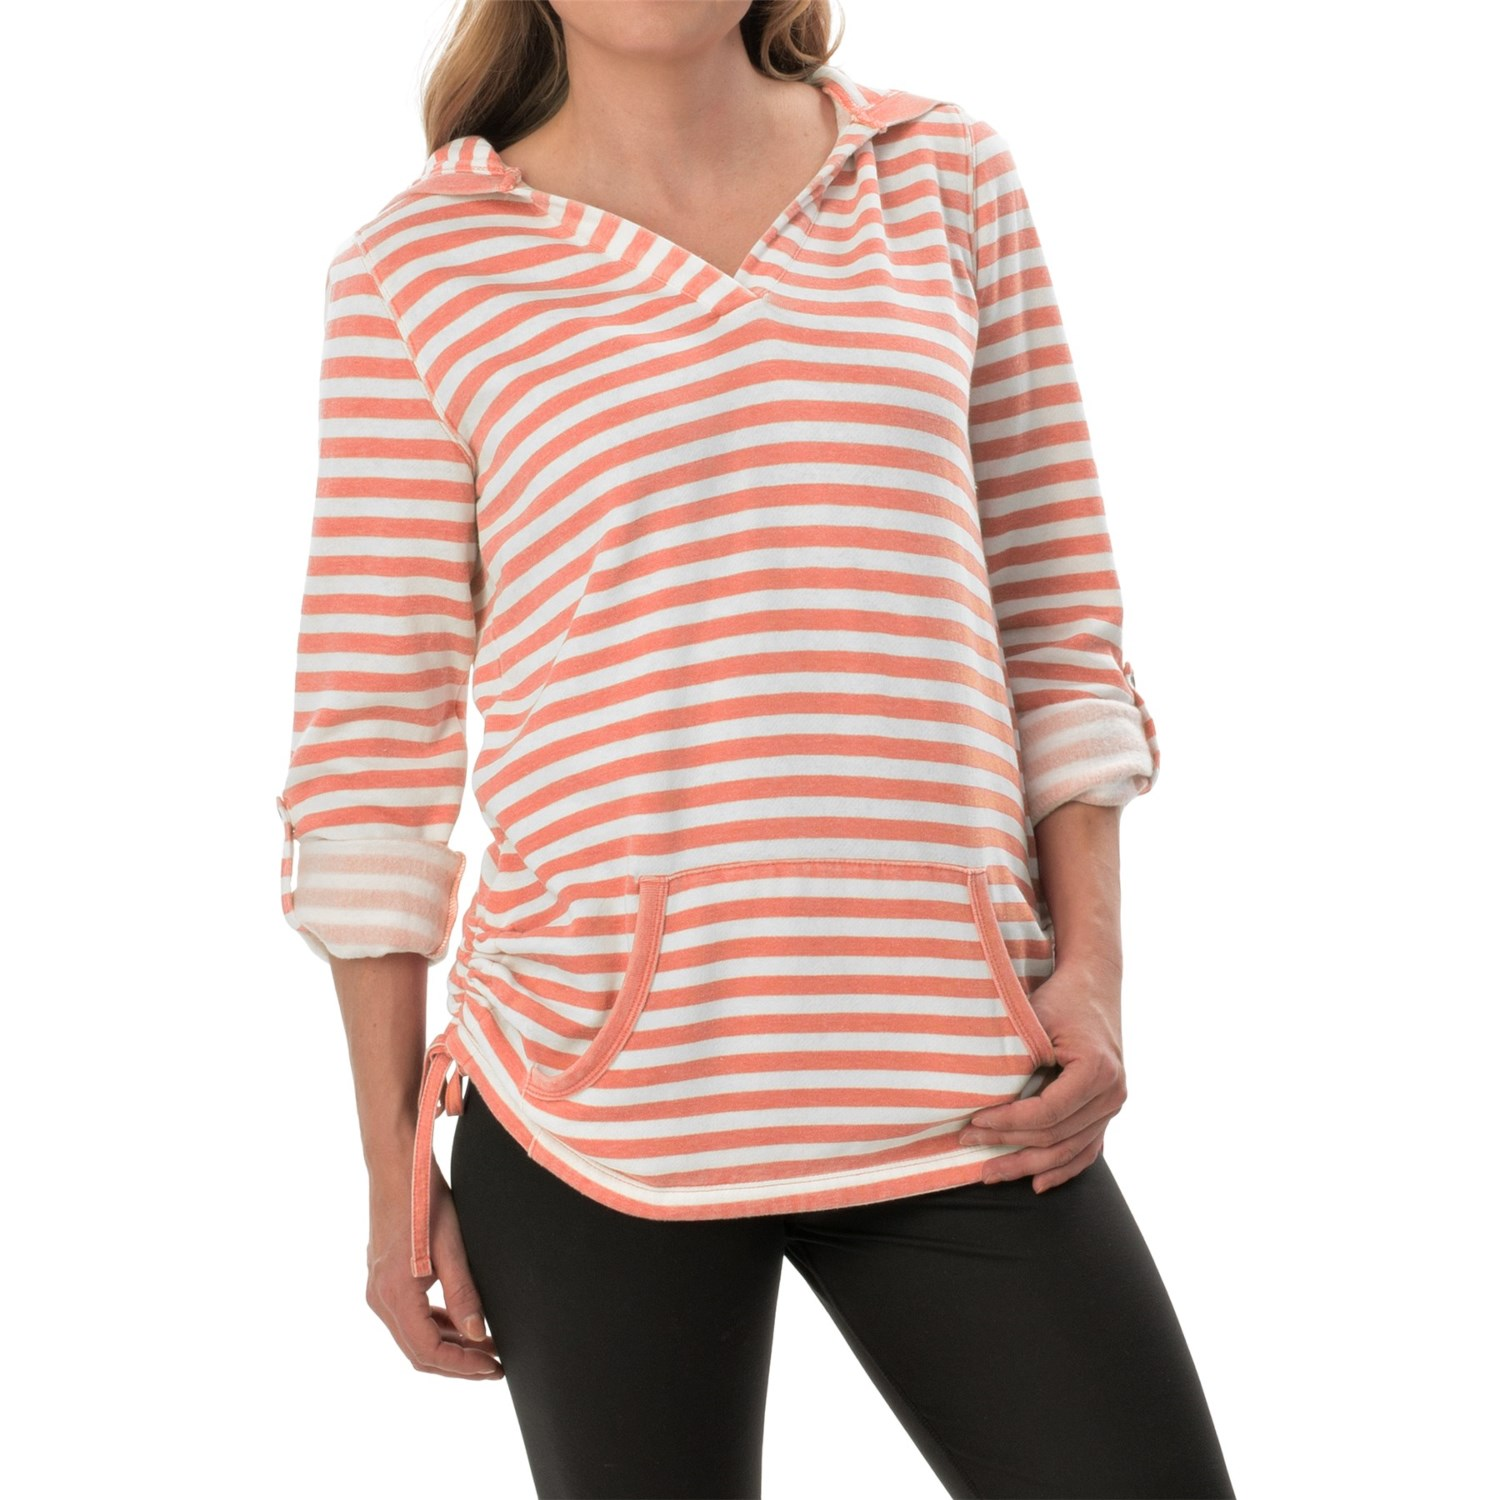 New York Performance: Marc New York Performance Fleece Striped Tunic Shirt (For